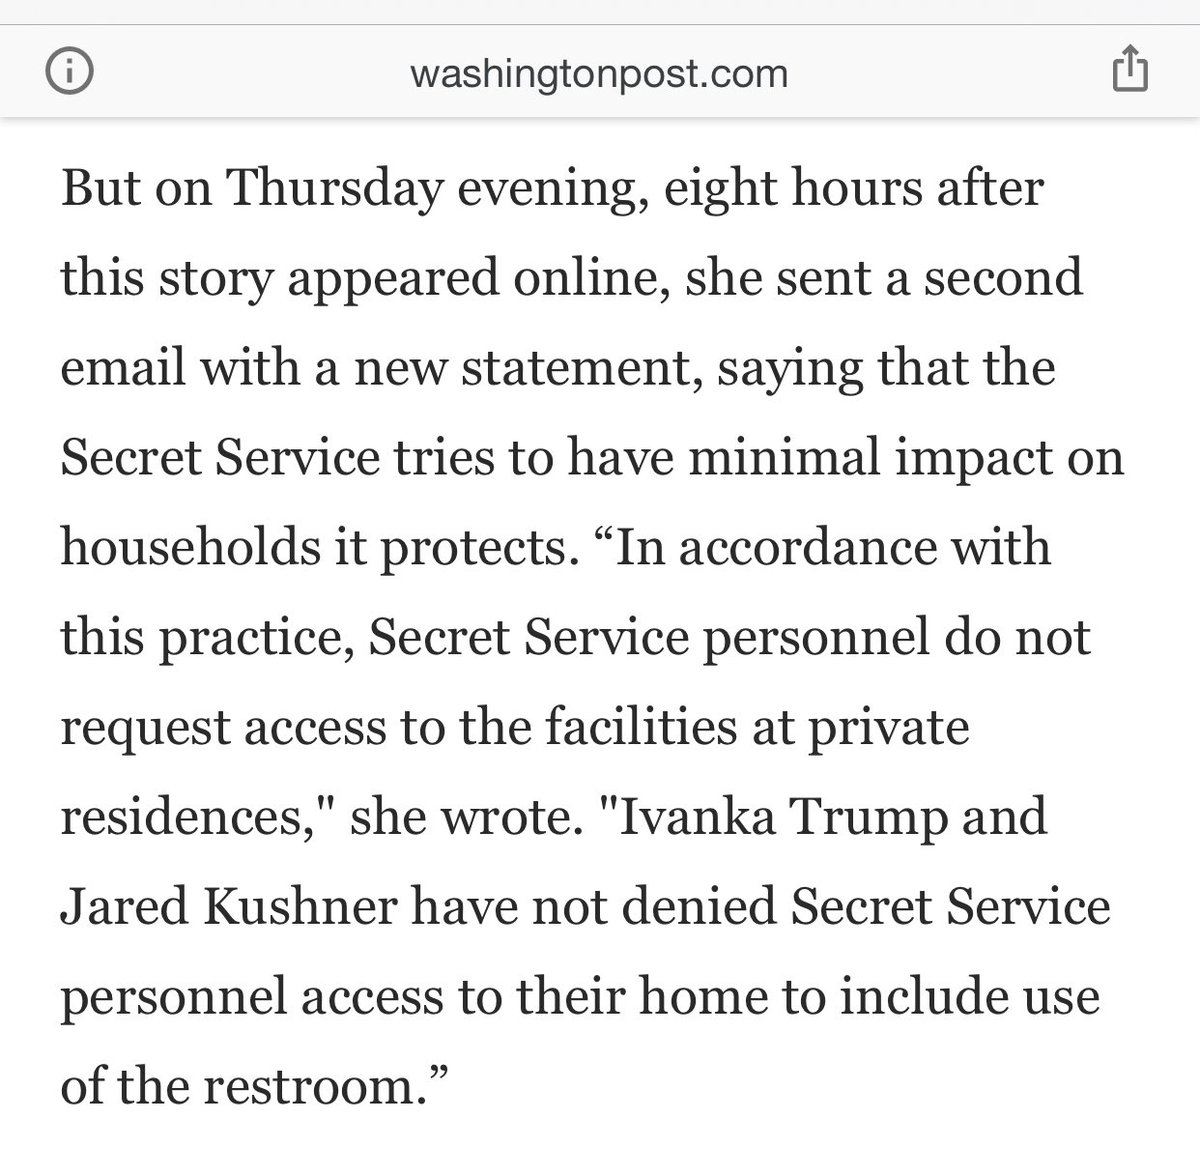 The @washingtonpost story about Jared and Ivanka today was a lie. The story never made sense, and was simply not true. Now the Secret Service has even denied the story. Please read the below.